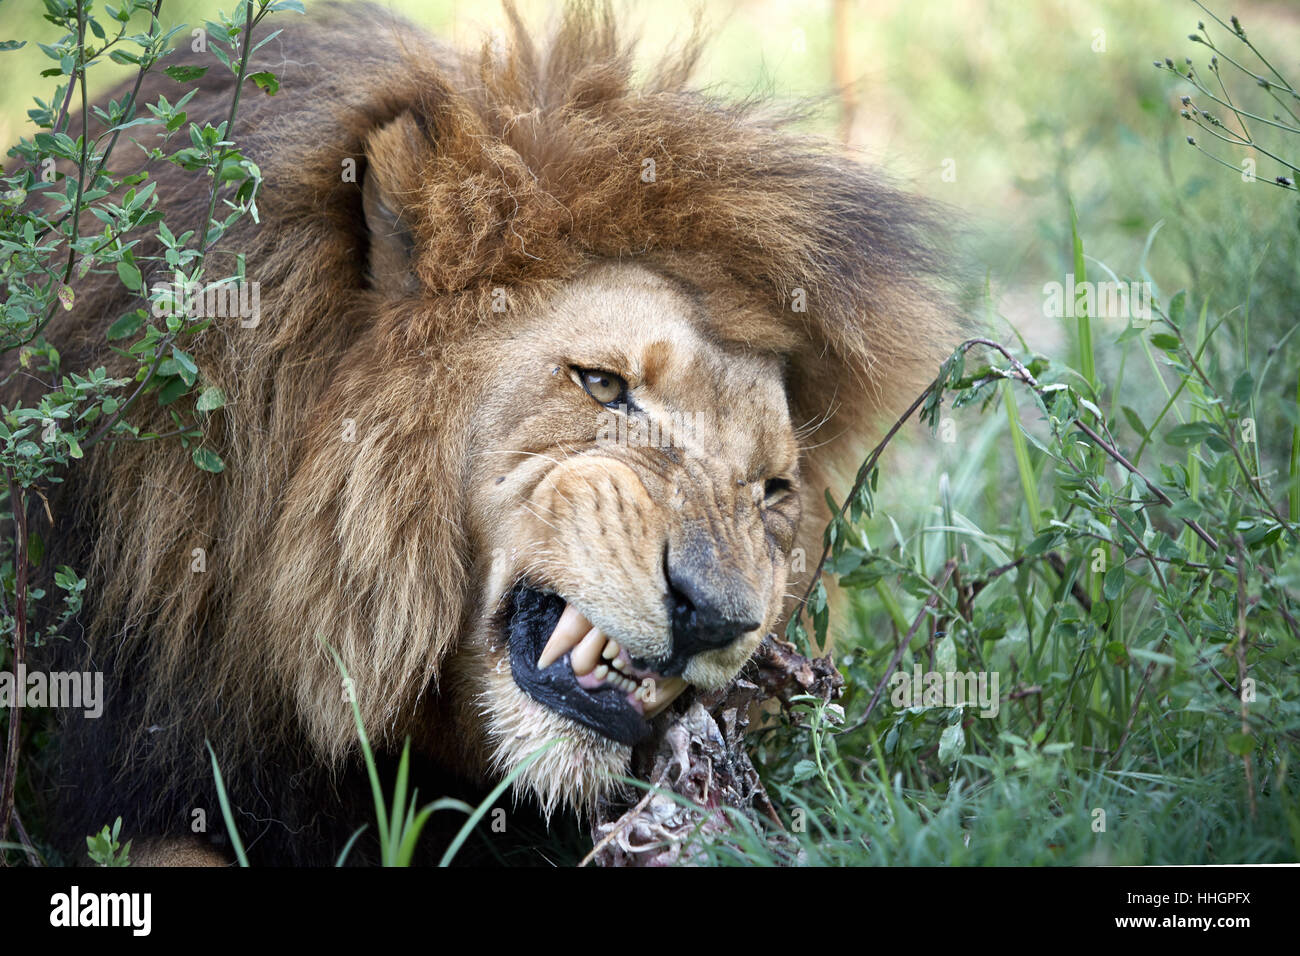 Male Lions, old and hungry - Stock Image